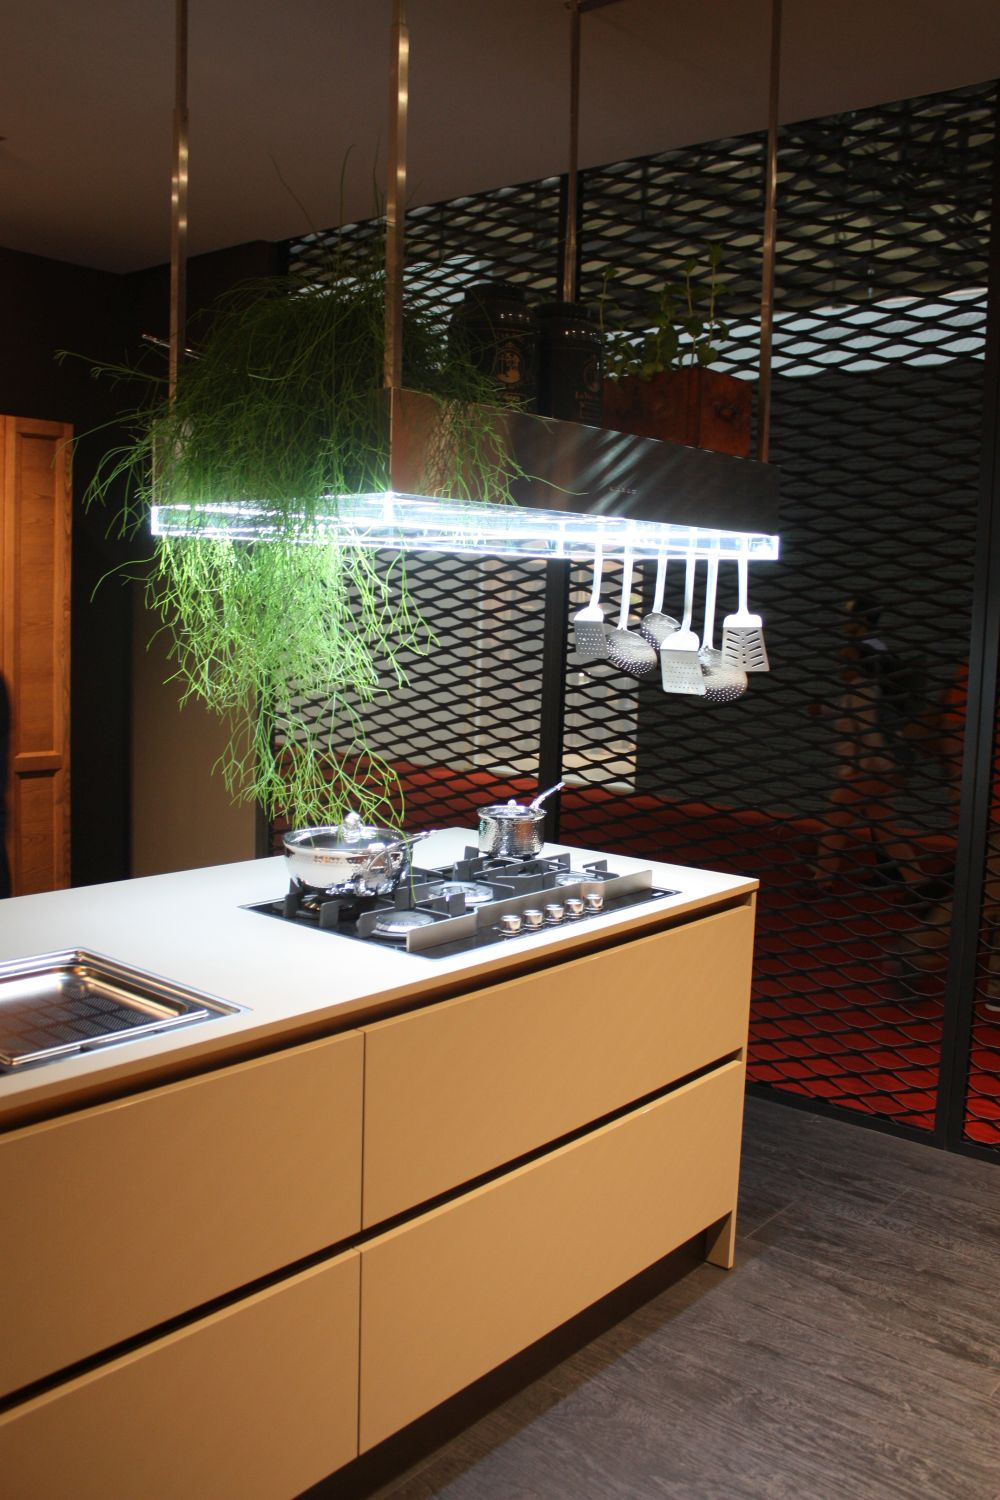 1571308813 993 kitchen island vent hoods that you can actually be proud of - Kitchen Island Vent Hoods That You Can Actually Be Proud Of